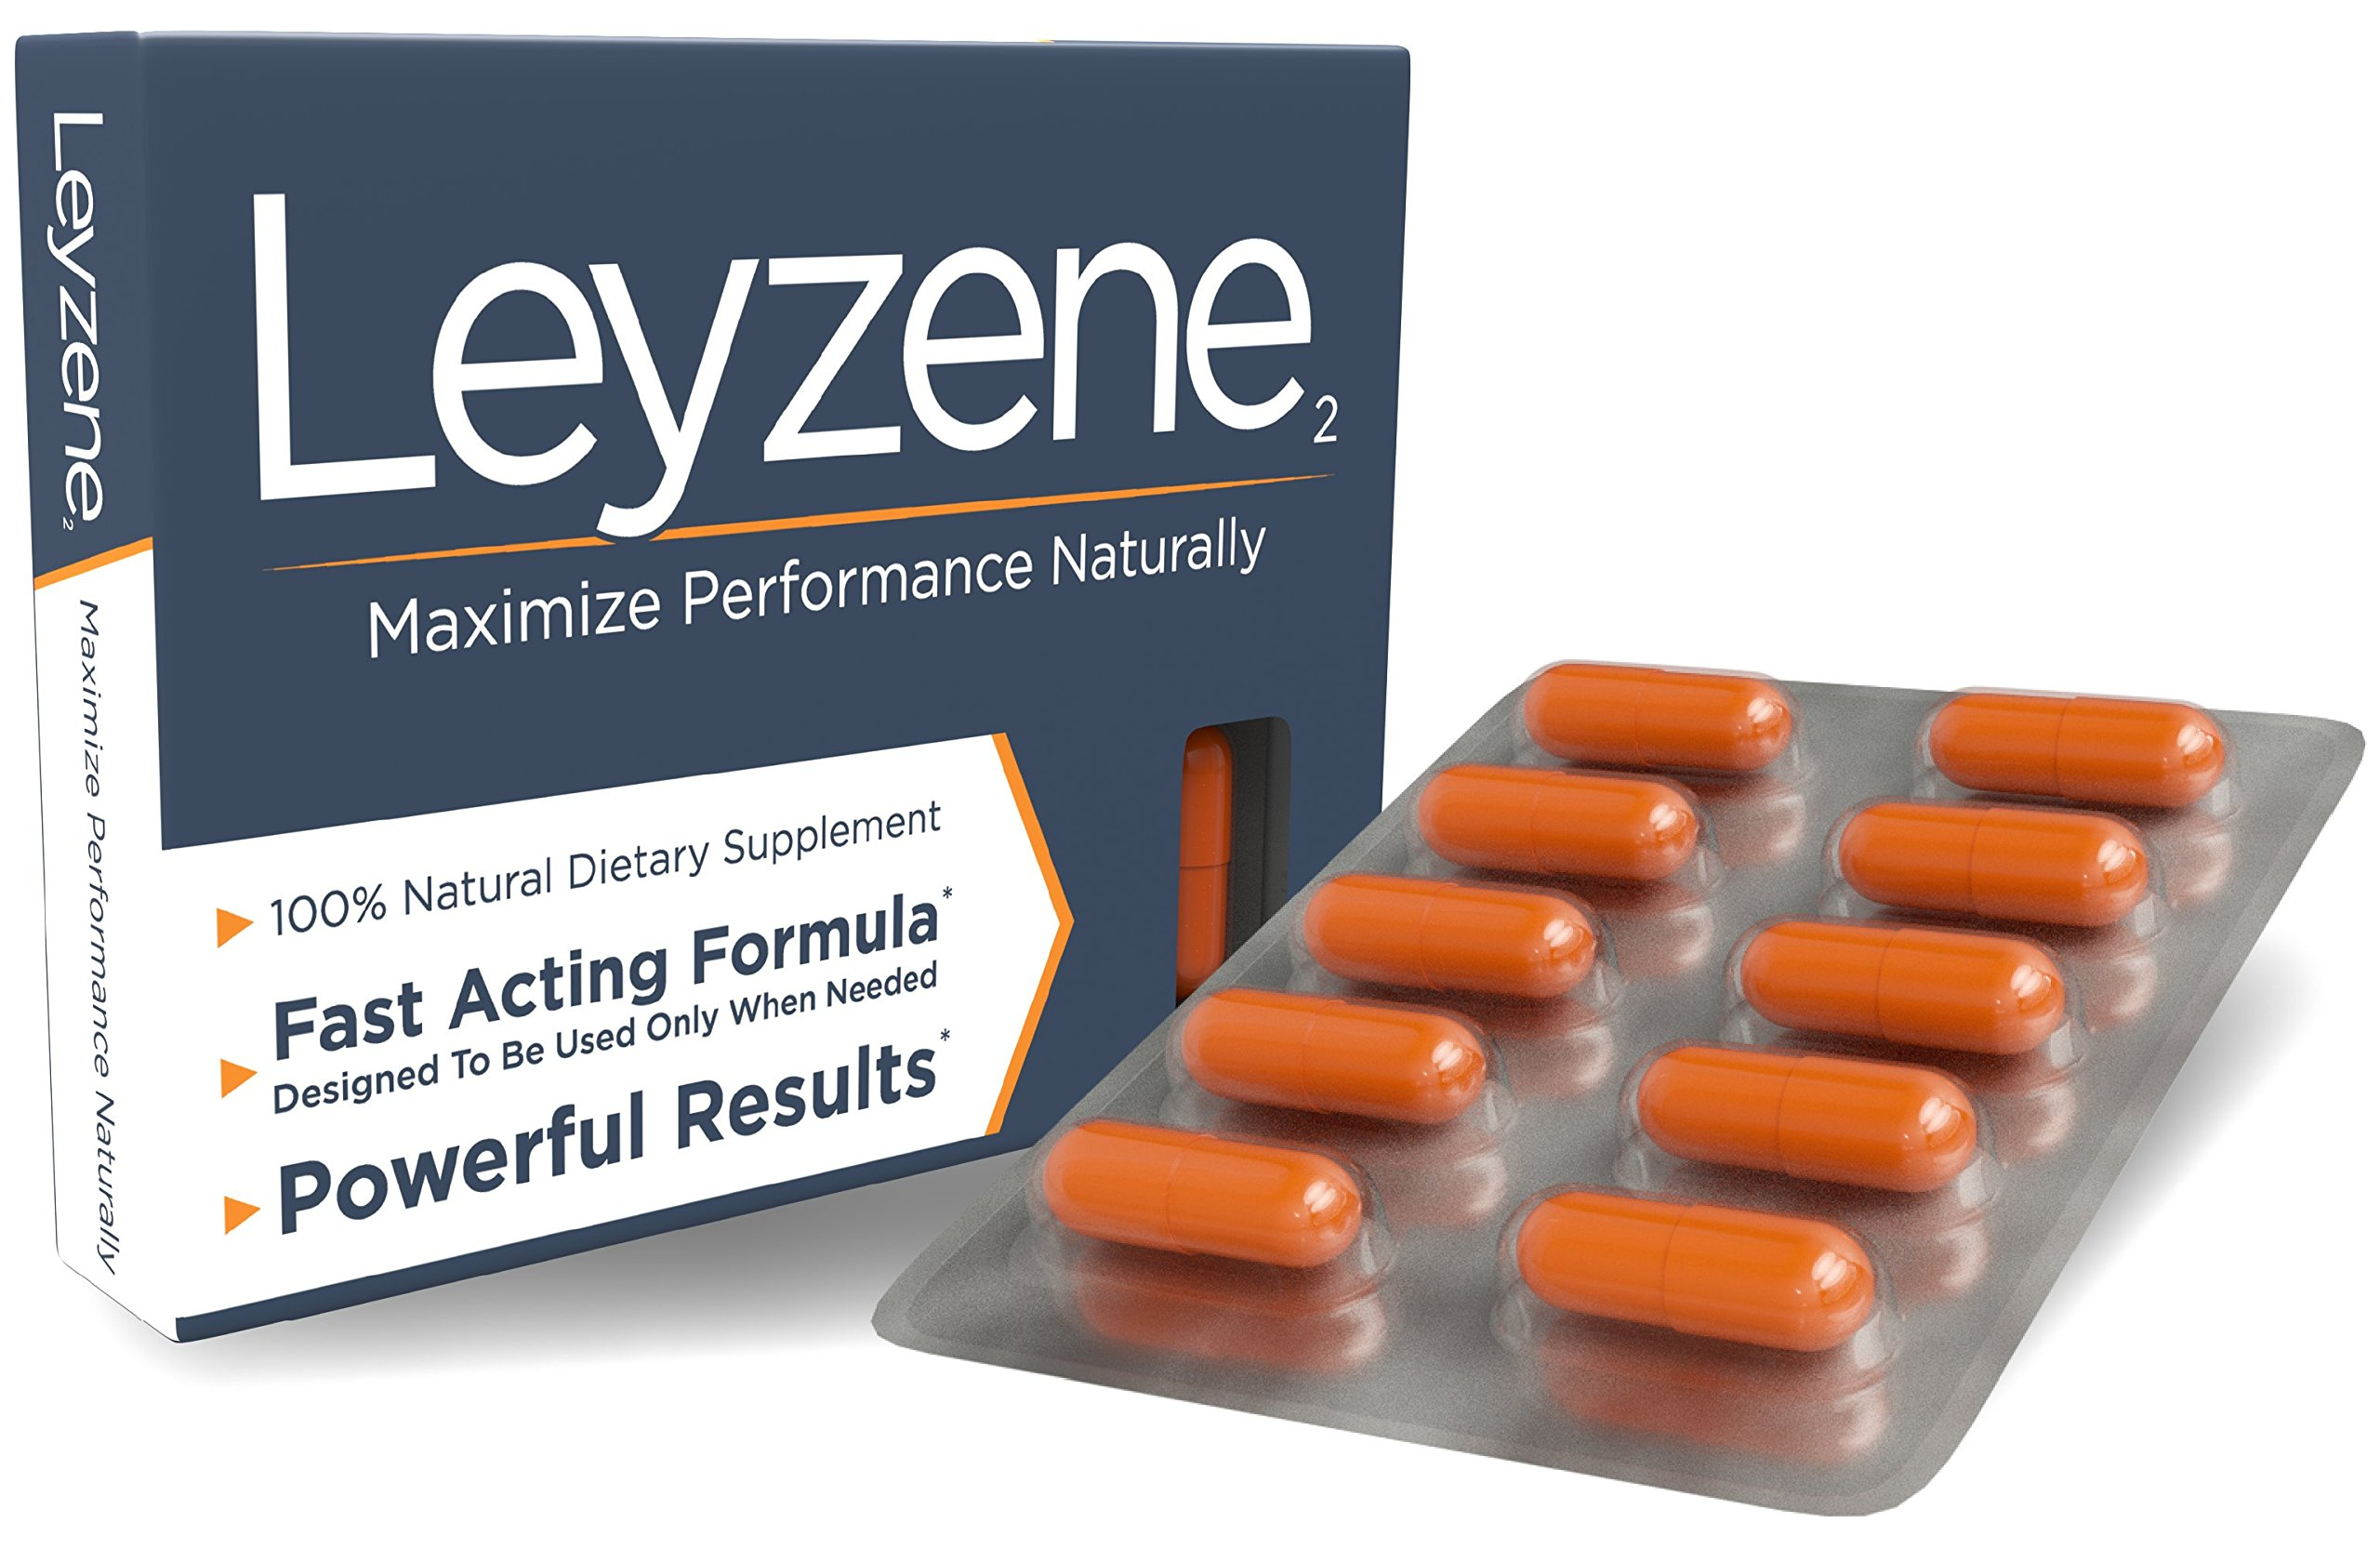 Leyzene₂ w/ Royal Jelly. The NEW Most Effective Natural Amplifier for Rapid Performance Male Enhancement, Energy, and Endurance! Doctor Certified!